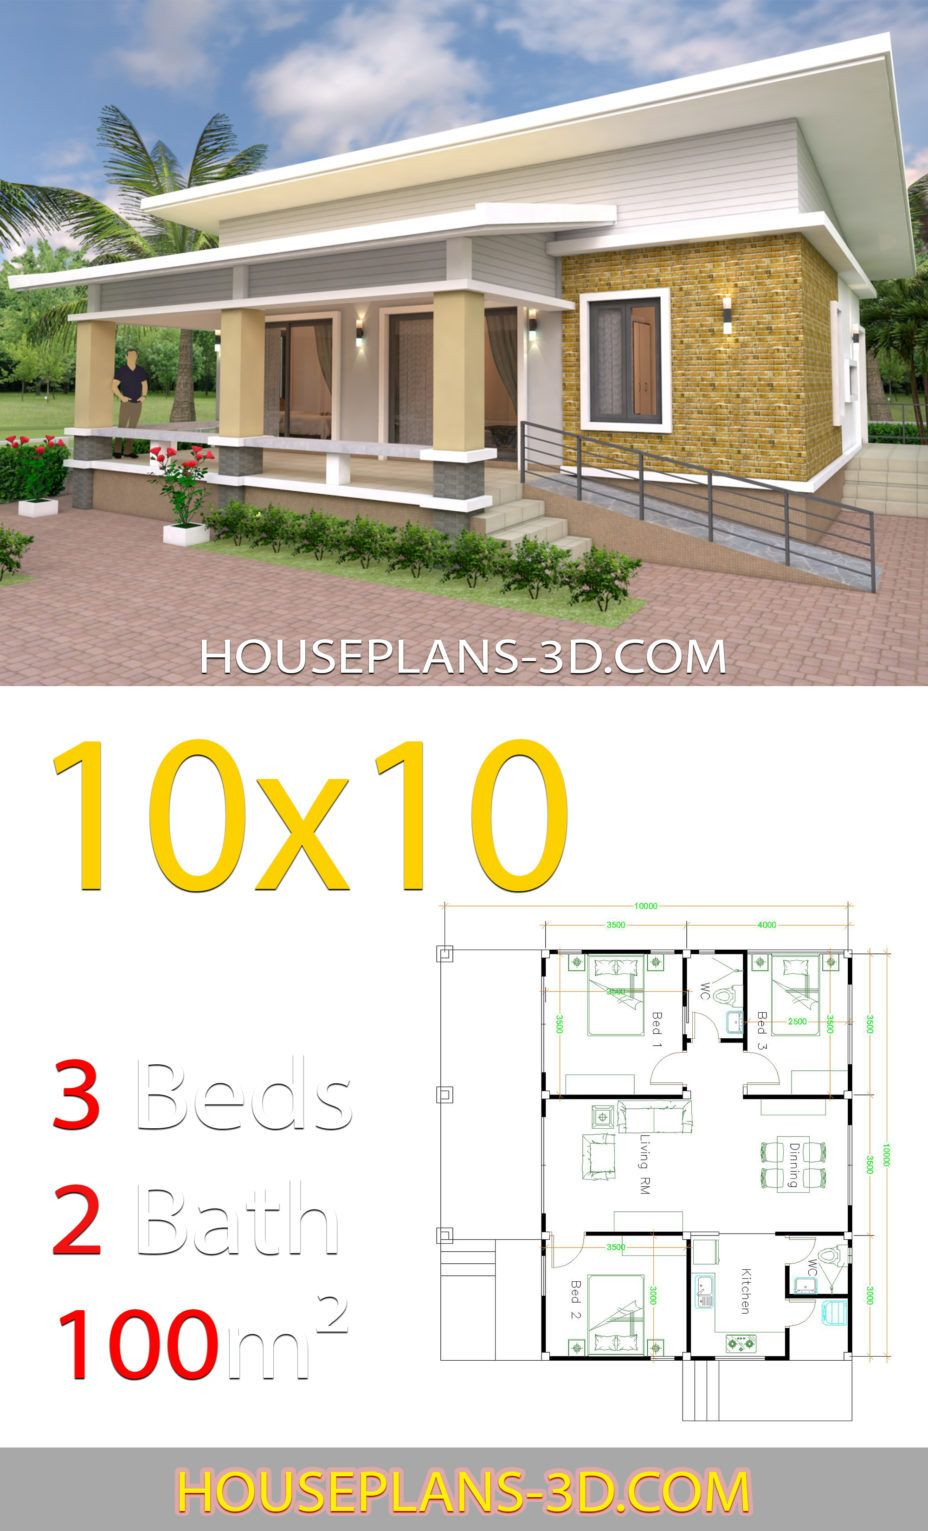 House Design Plans 10x10 With 3 Bedrooms Full Interior House Plans 3d In 2020 House Plans House Design Guest House Plans